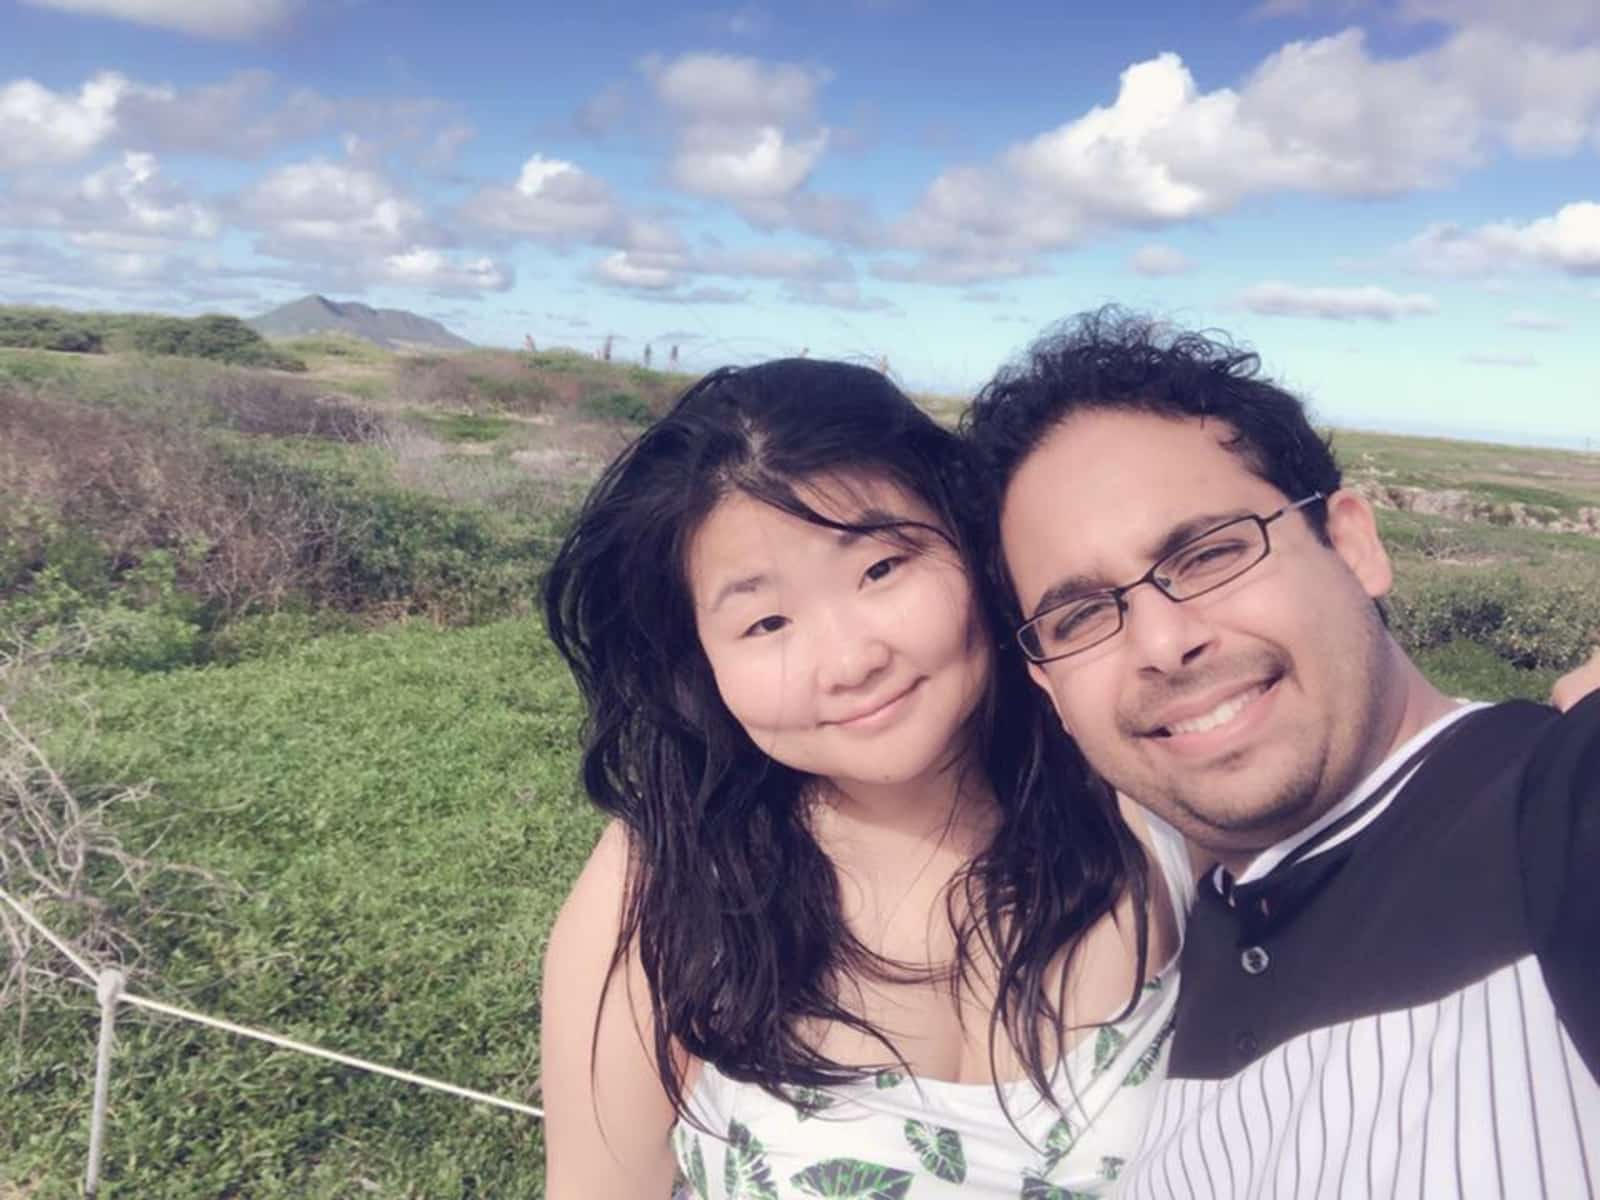 Yi & Mohammed from San Francisco, California, United States